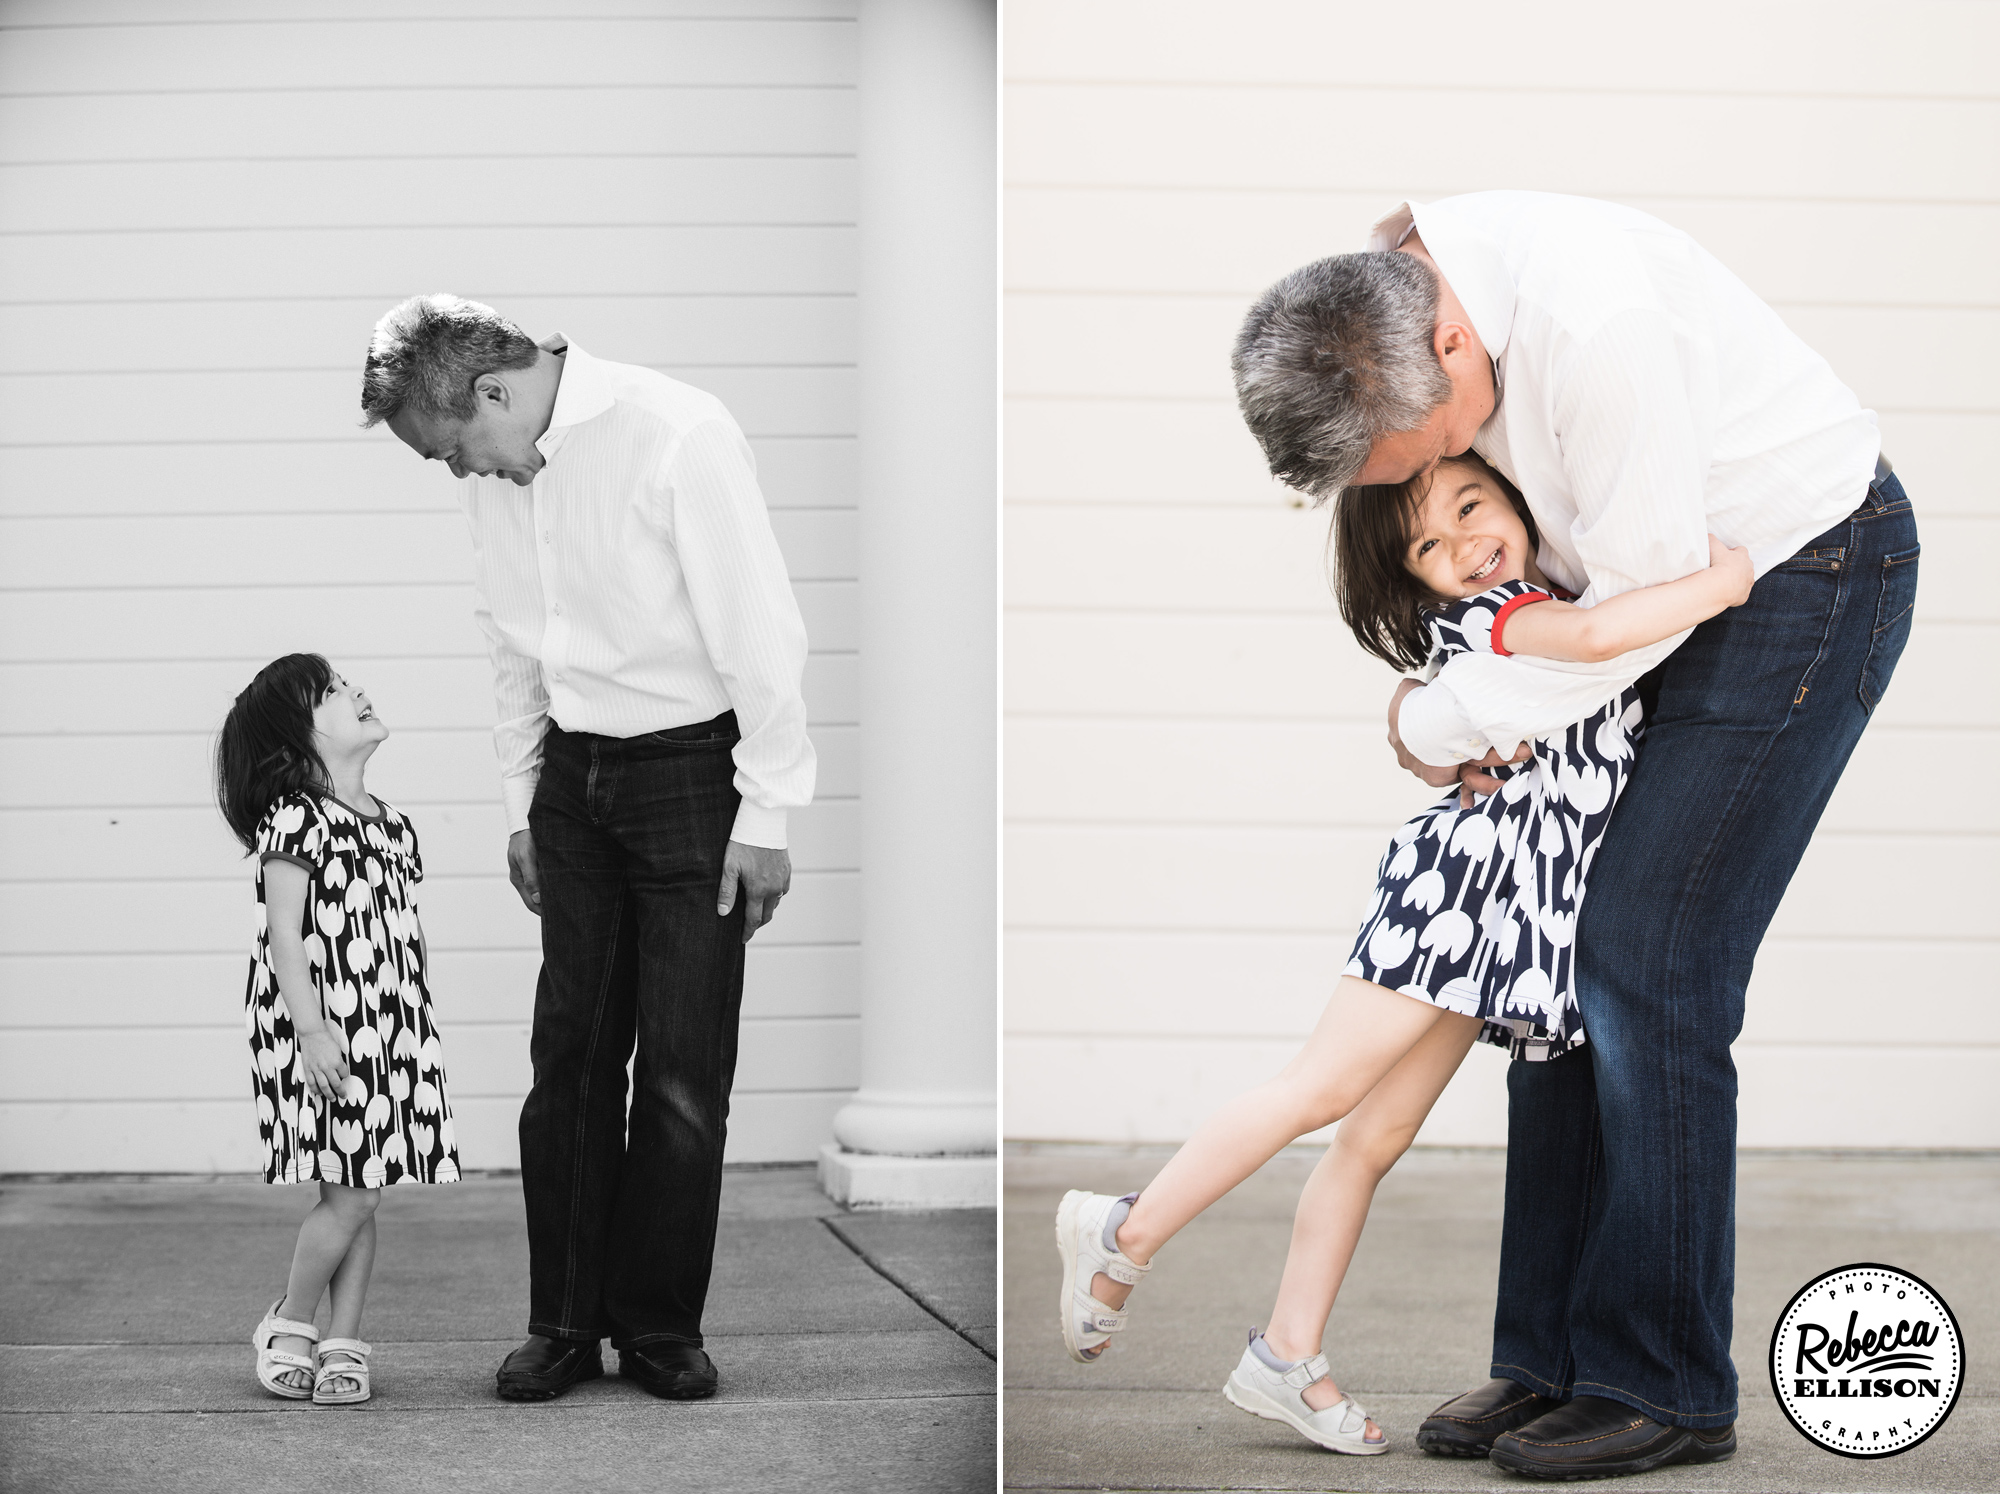 Father and Daughter hug each other during a family portrait session with Kirkland family photographer Rebecca Ellison